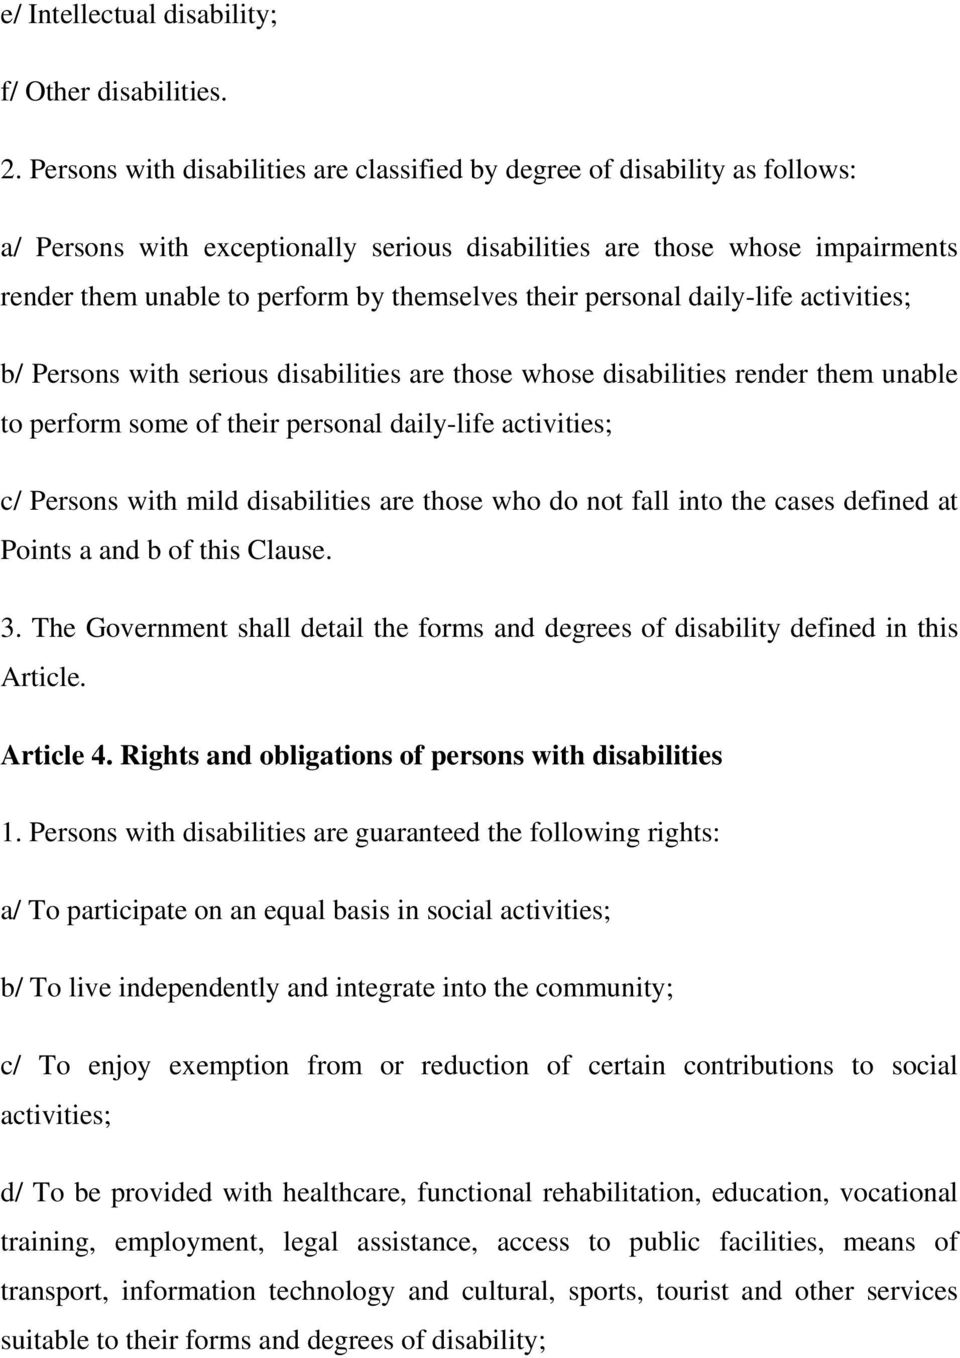 their personal daily-life activities; b/ Persons with serious disabilities are those whose disabilities render them unable to perform some of their personal daily-life activities; c/ Persons with